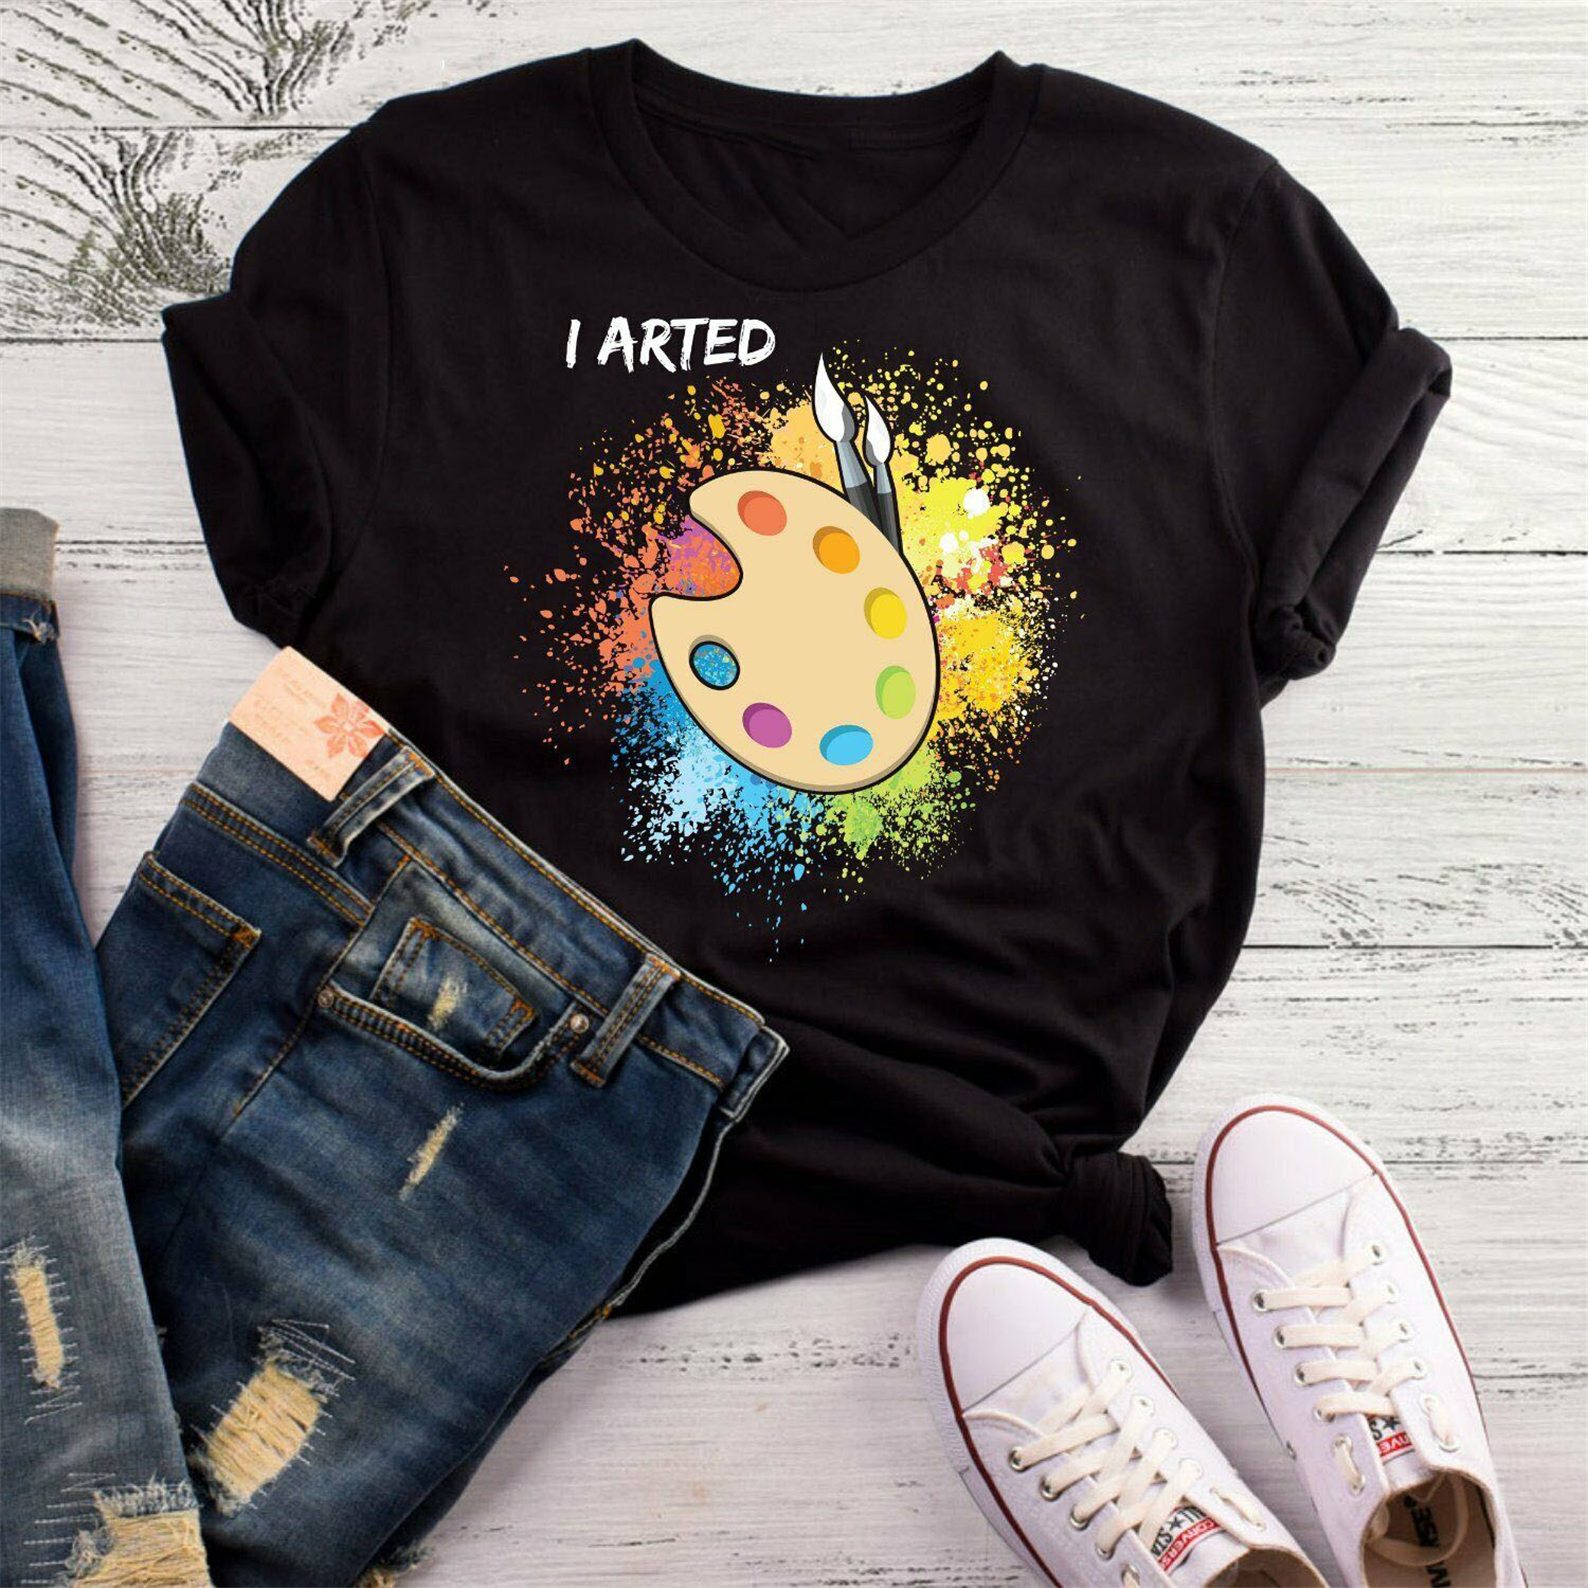 I Arted T-<font><b>Shirt</b></font> Funny Art Teacher Tshirt Artist Artist Gift, Gift For <font><b>Ar</b></font> Tops Tee <font><b>Shirt</b></font> Cotton short sleeve image